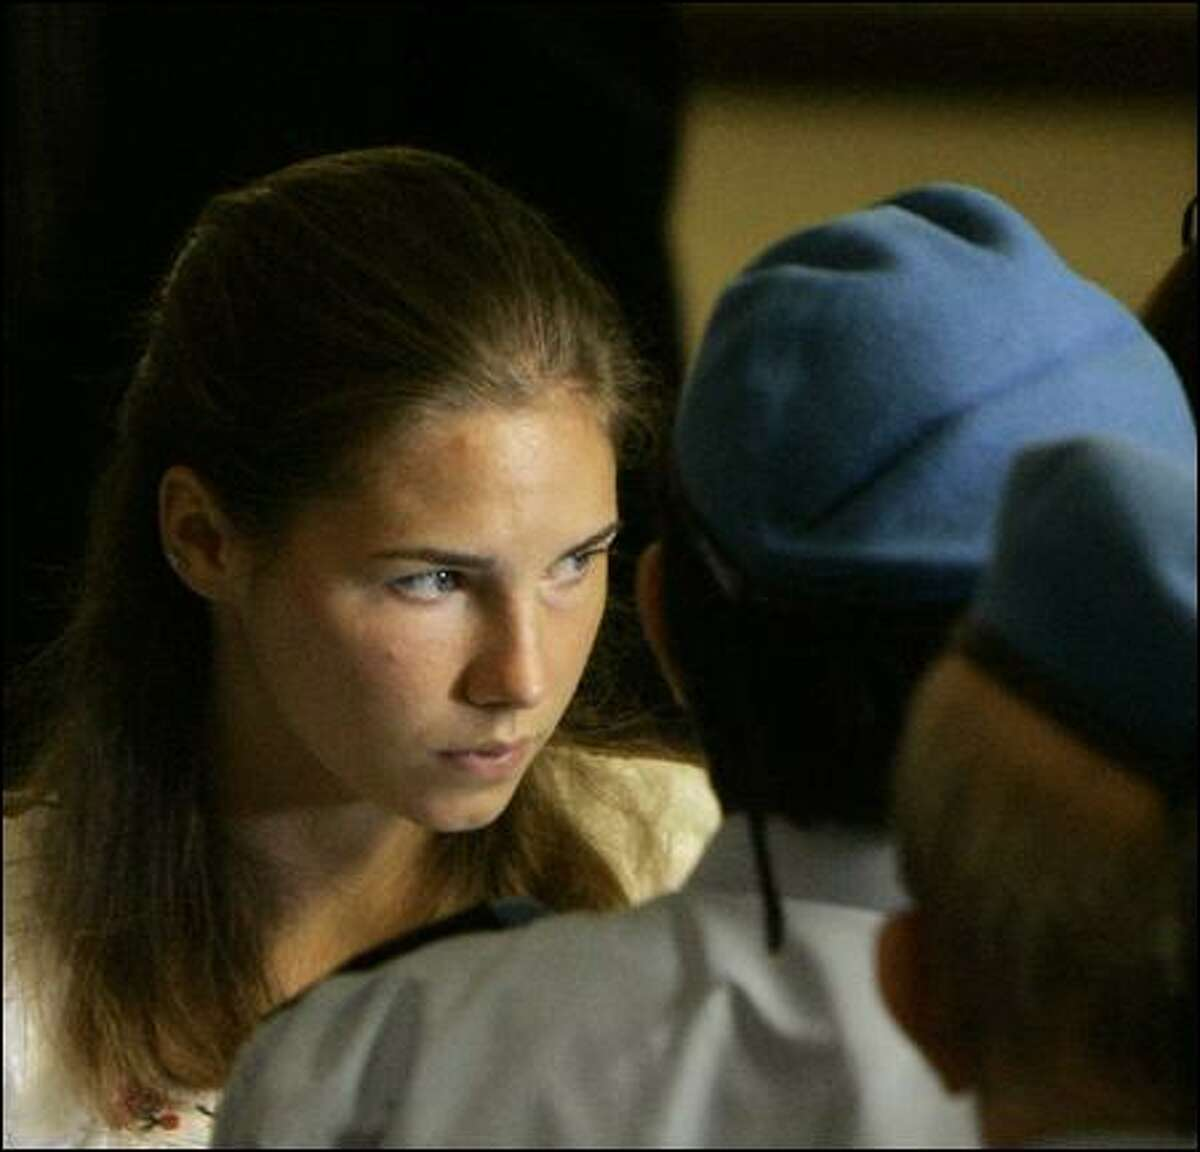 The trial for Amanda Knox is scheduled for Jan. 19.